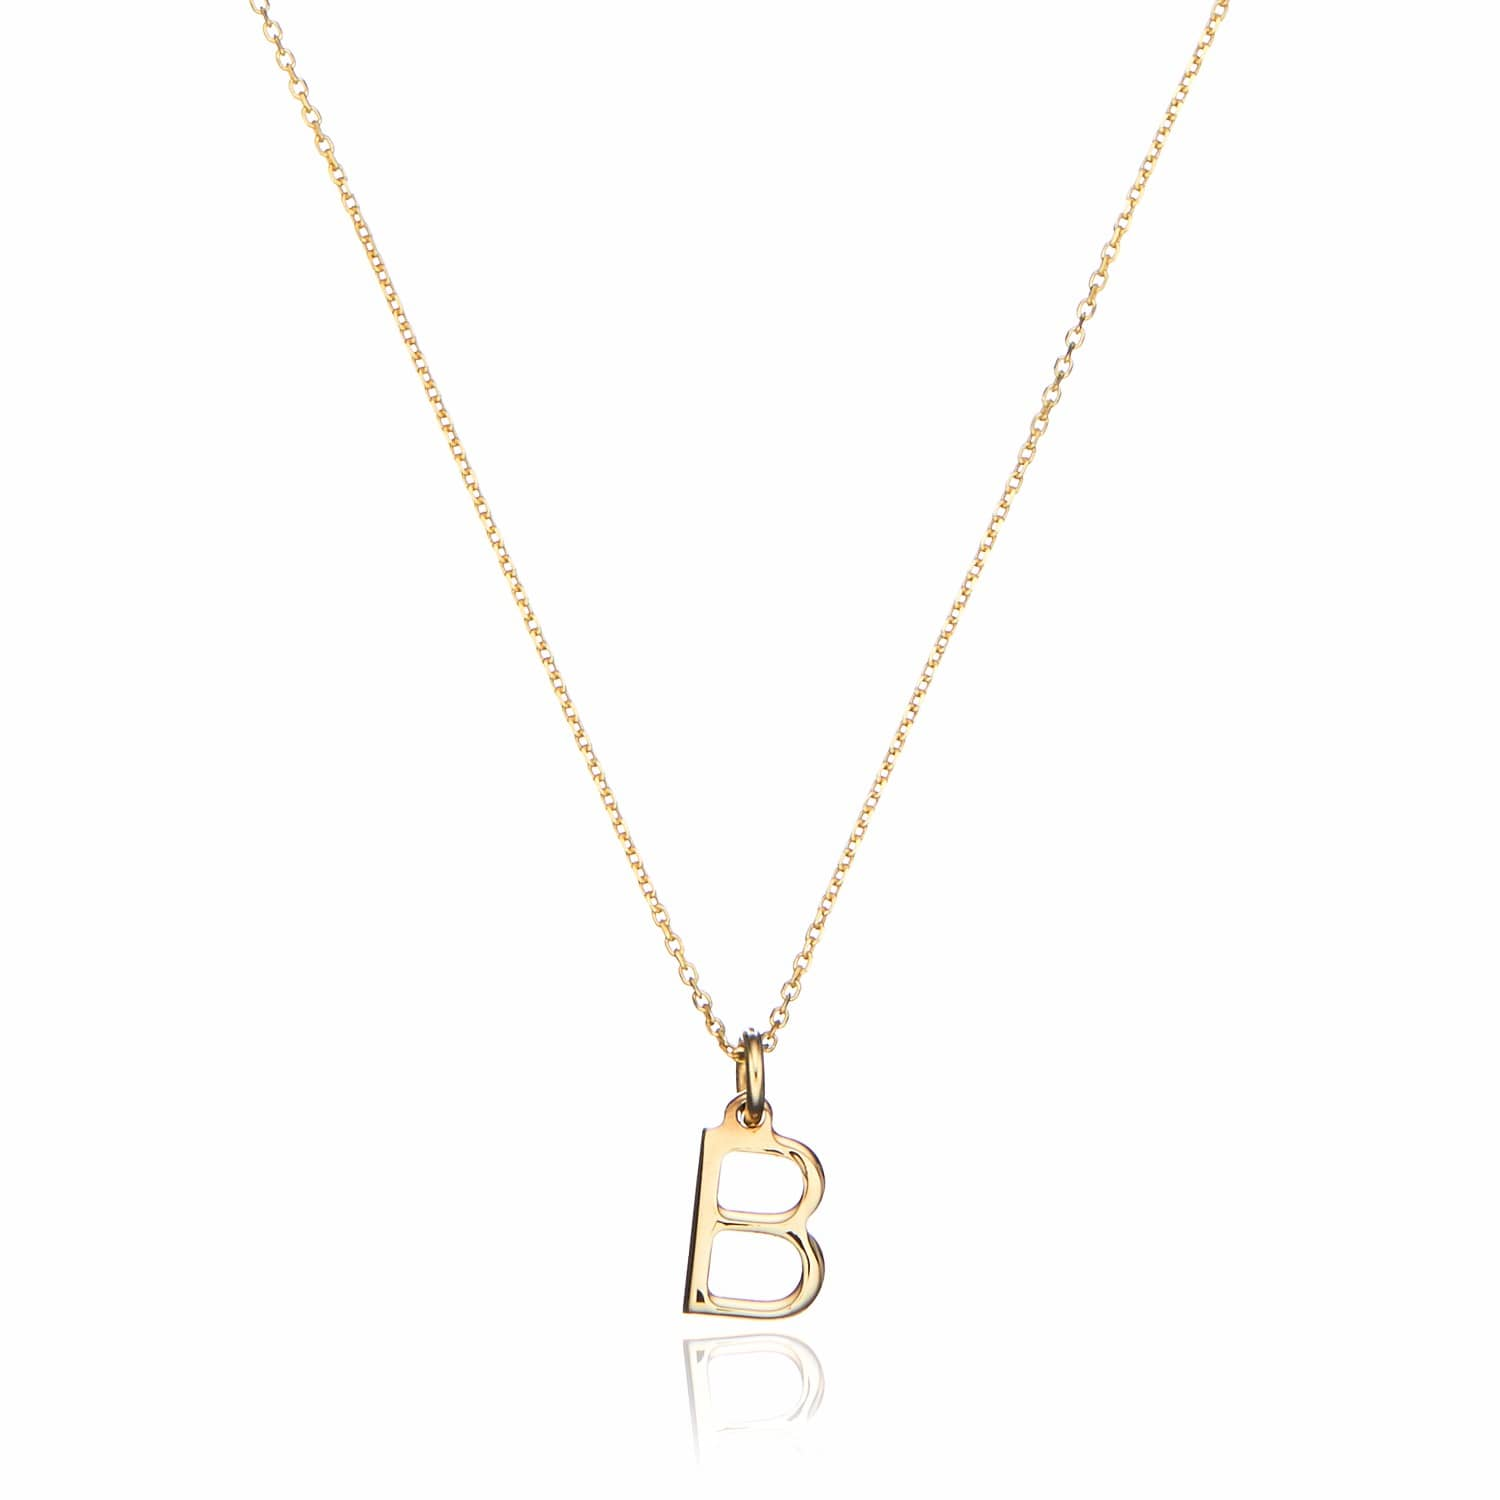 a8d0ae8cd7d Solid Gold Small Initial Letter Charm Necklace by Lily & Roo